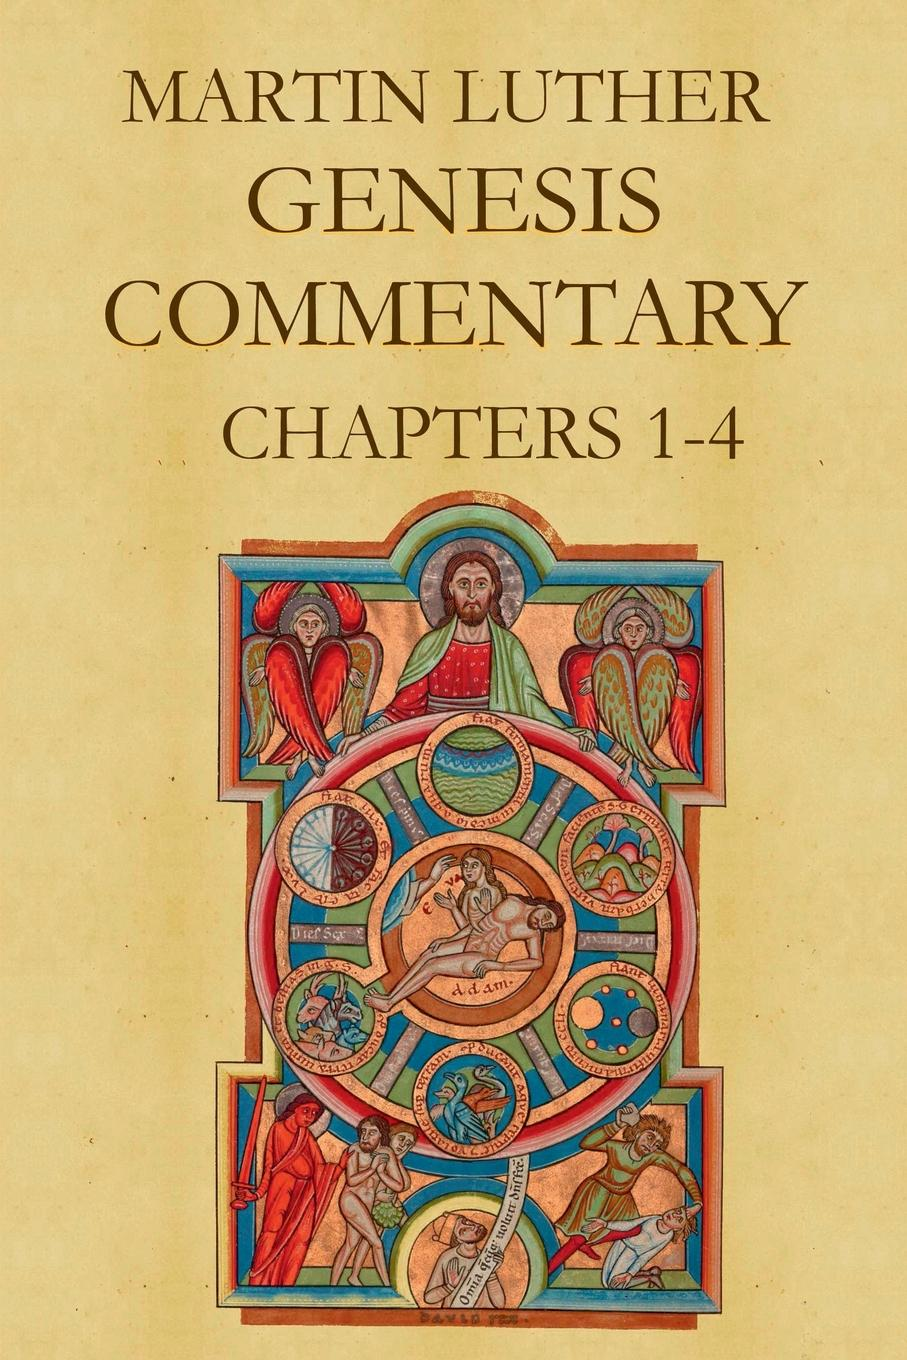 Martin Luther Martin Luther.s Commentary on Genesis (Chapters 1-4) luther on leadership